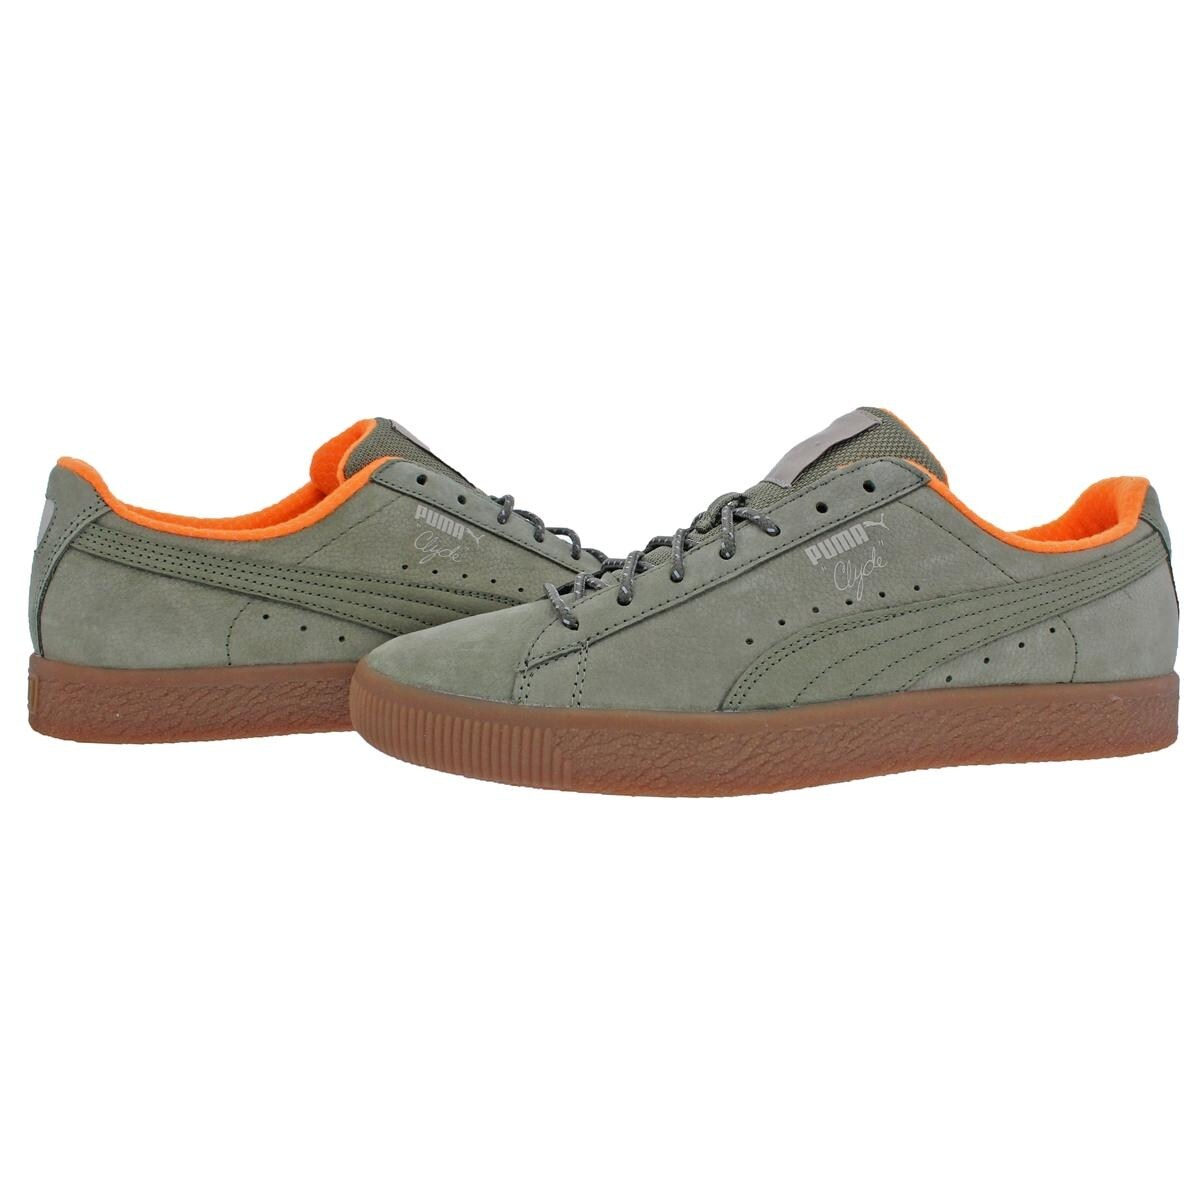 Puma Mens Clyde Winter Fashion Sneakers Fashion Low Top - 11 medium (d) -  Free Shipping Today - Overstock - 28006242 25e89b5d5